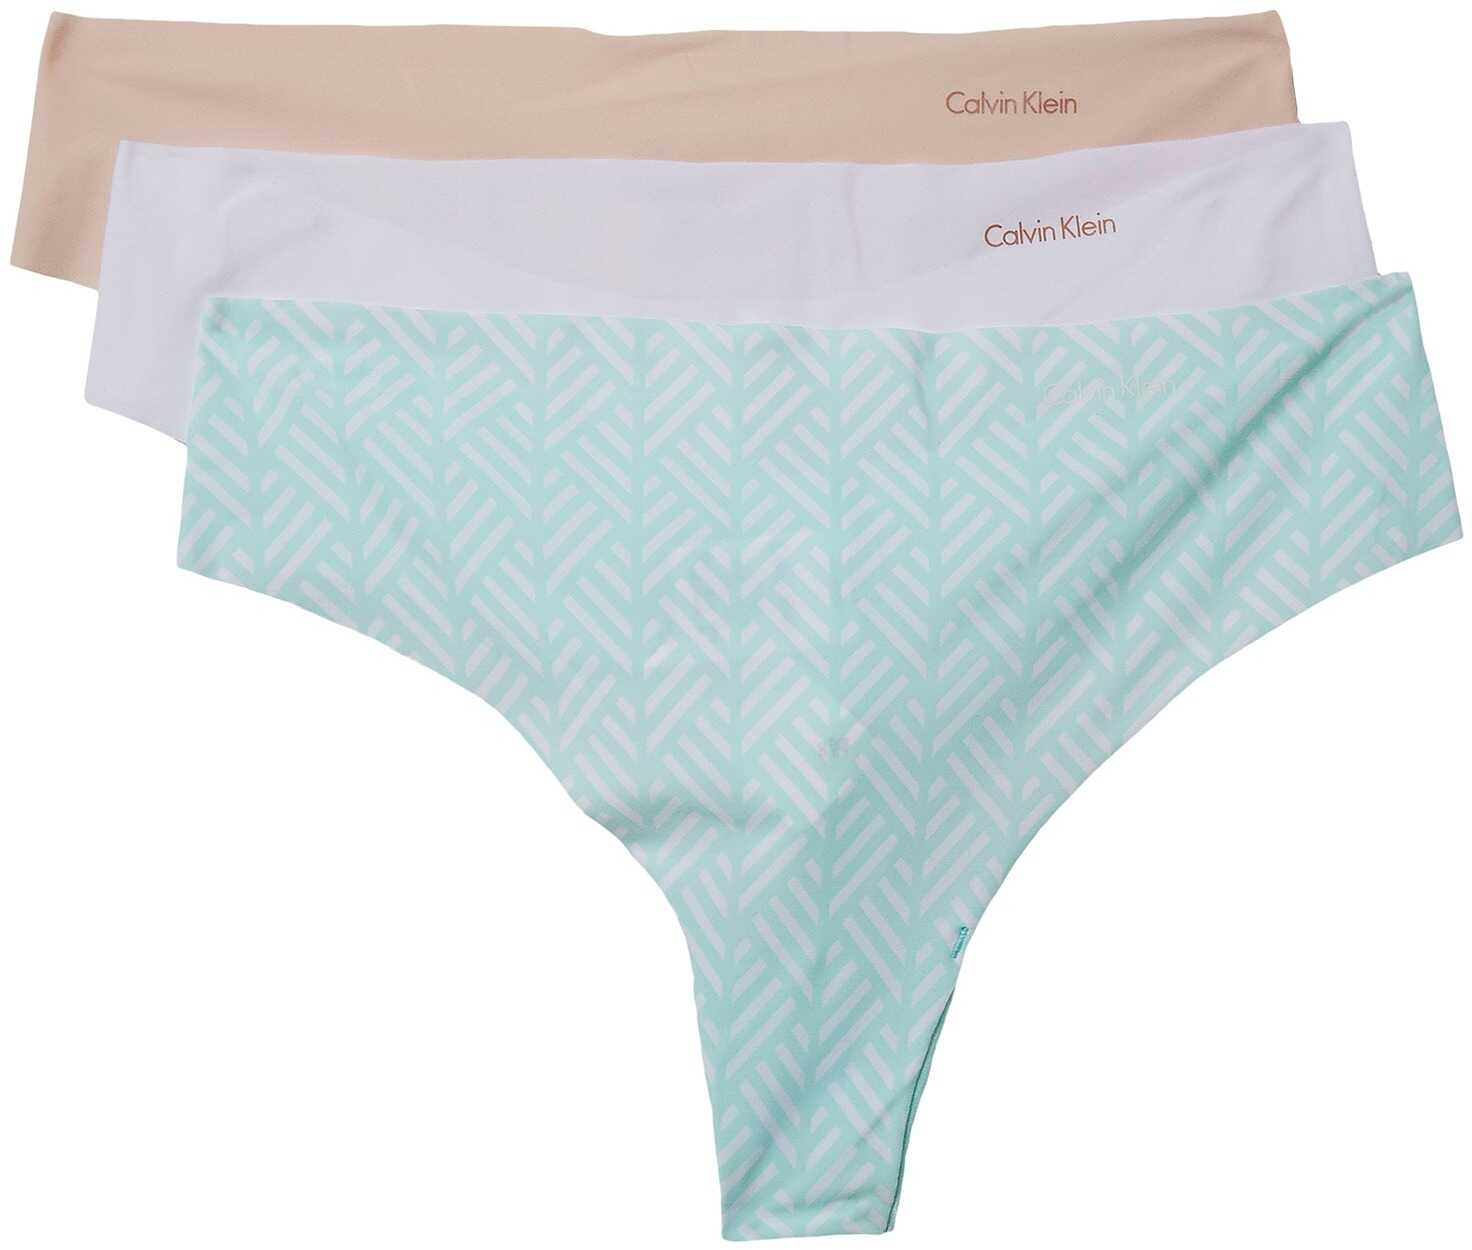 Calvin Klein Underwear Invisibles 3-Pack Thong Sheer Blush/White/Chevron Stripe